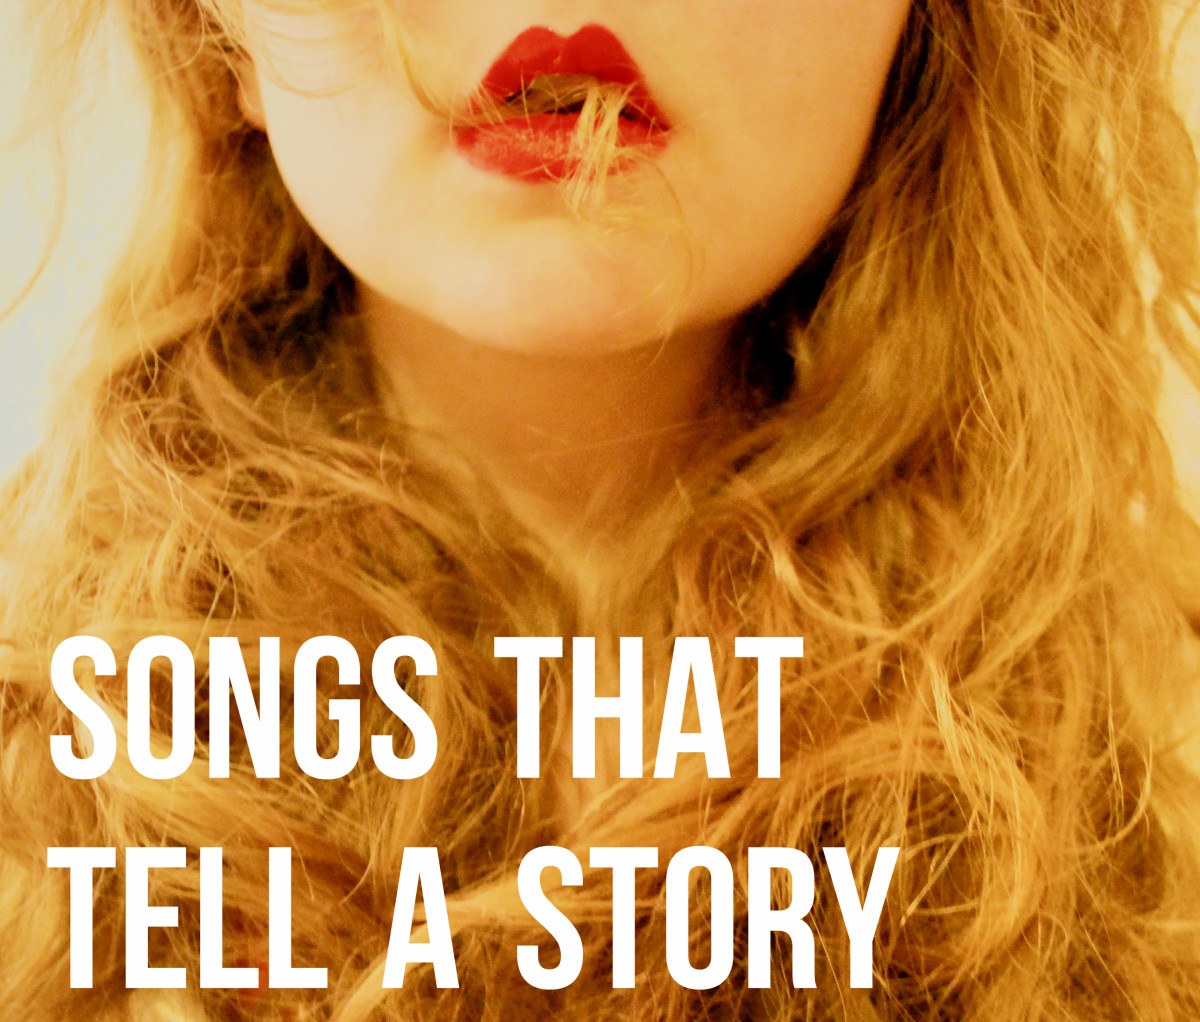 Songs don't just convey emotion.  Sometimes they convey great stories. Make a playlist of pop, rock, and country tunes that tell a story. We have a long list to start you off with!